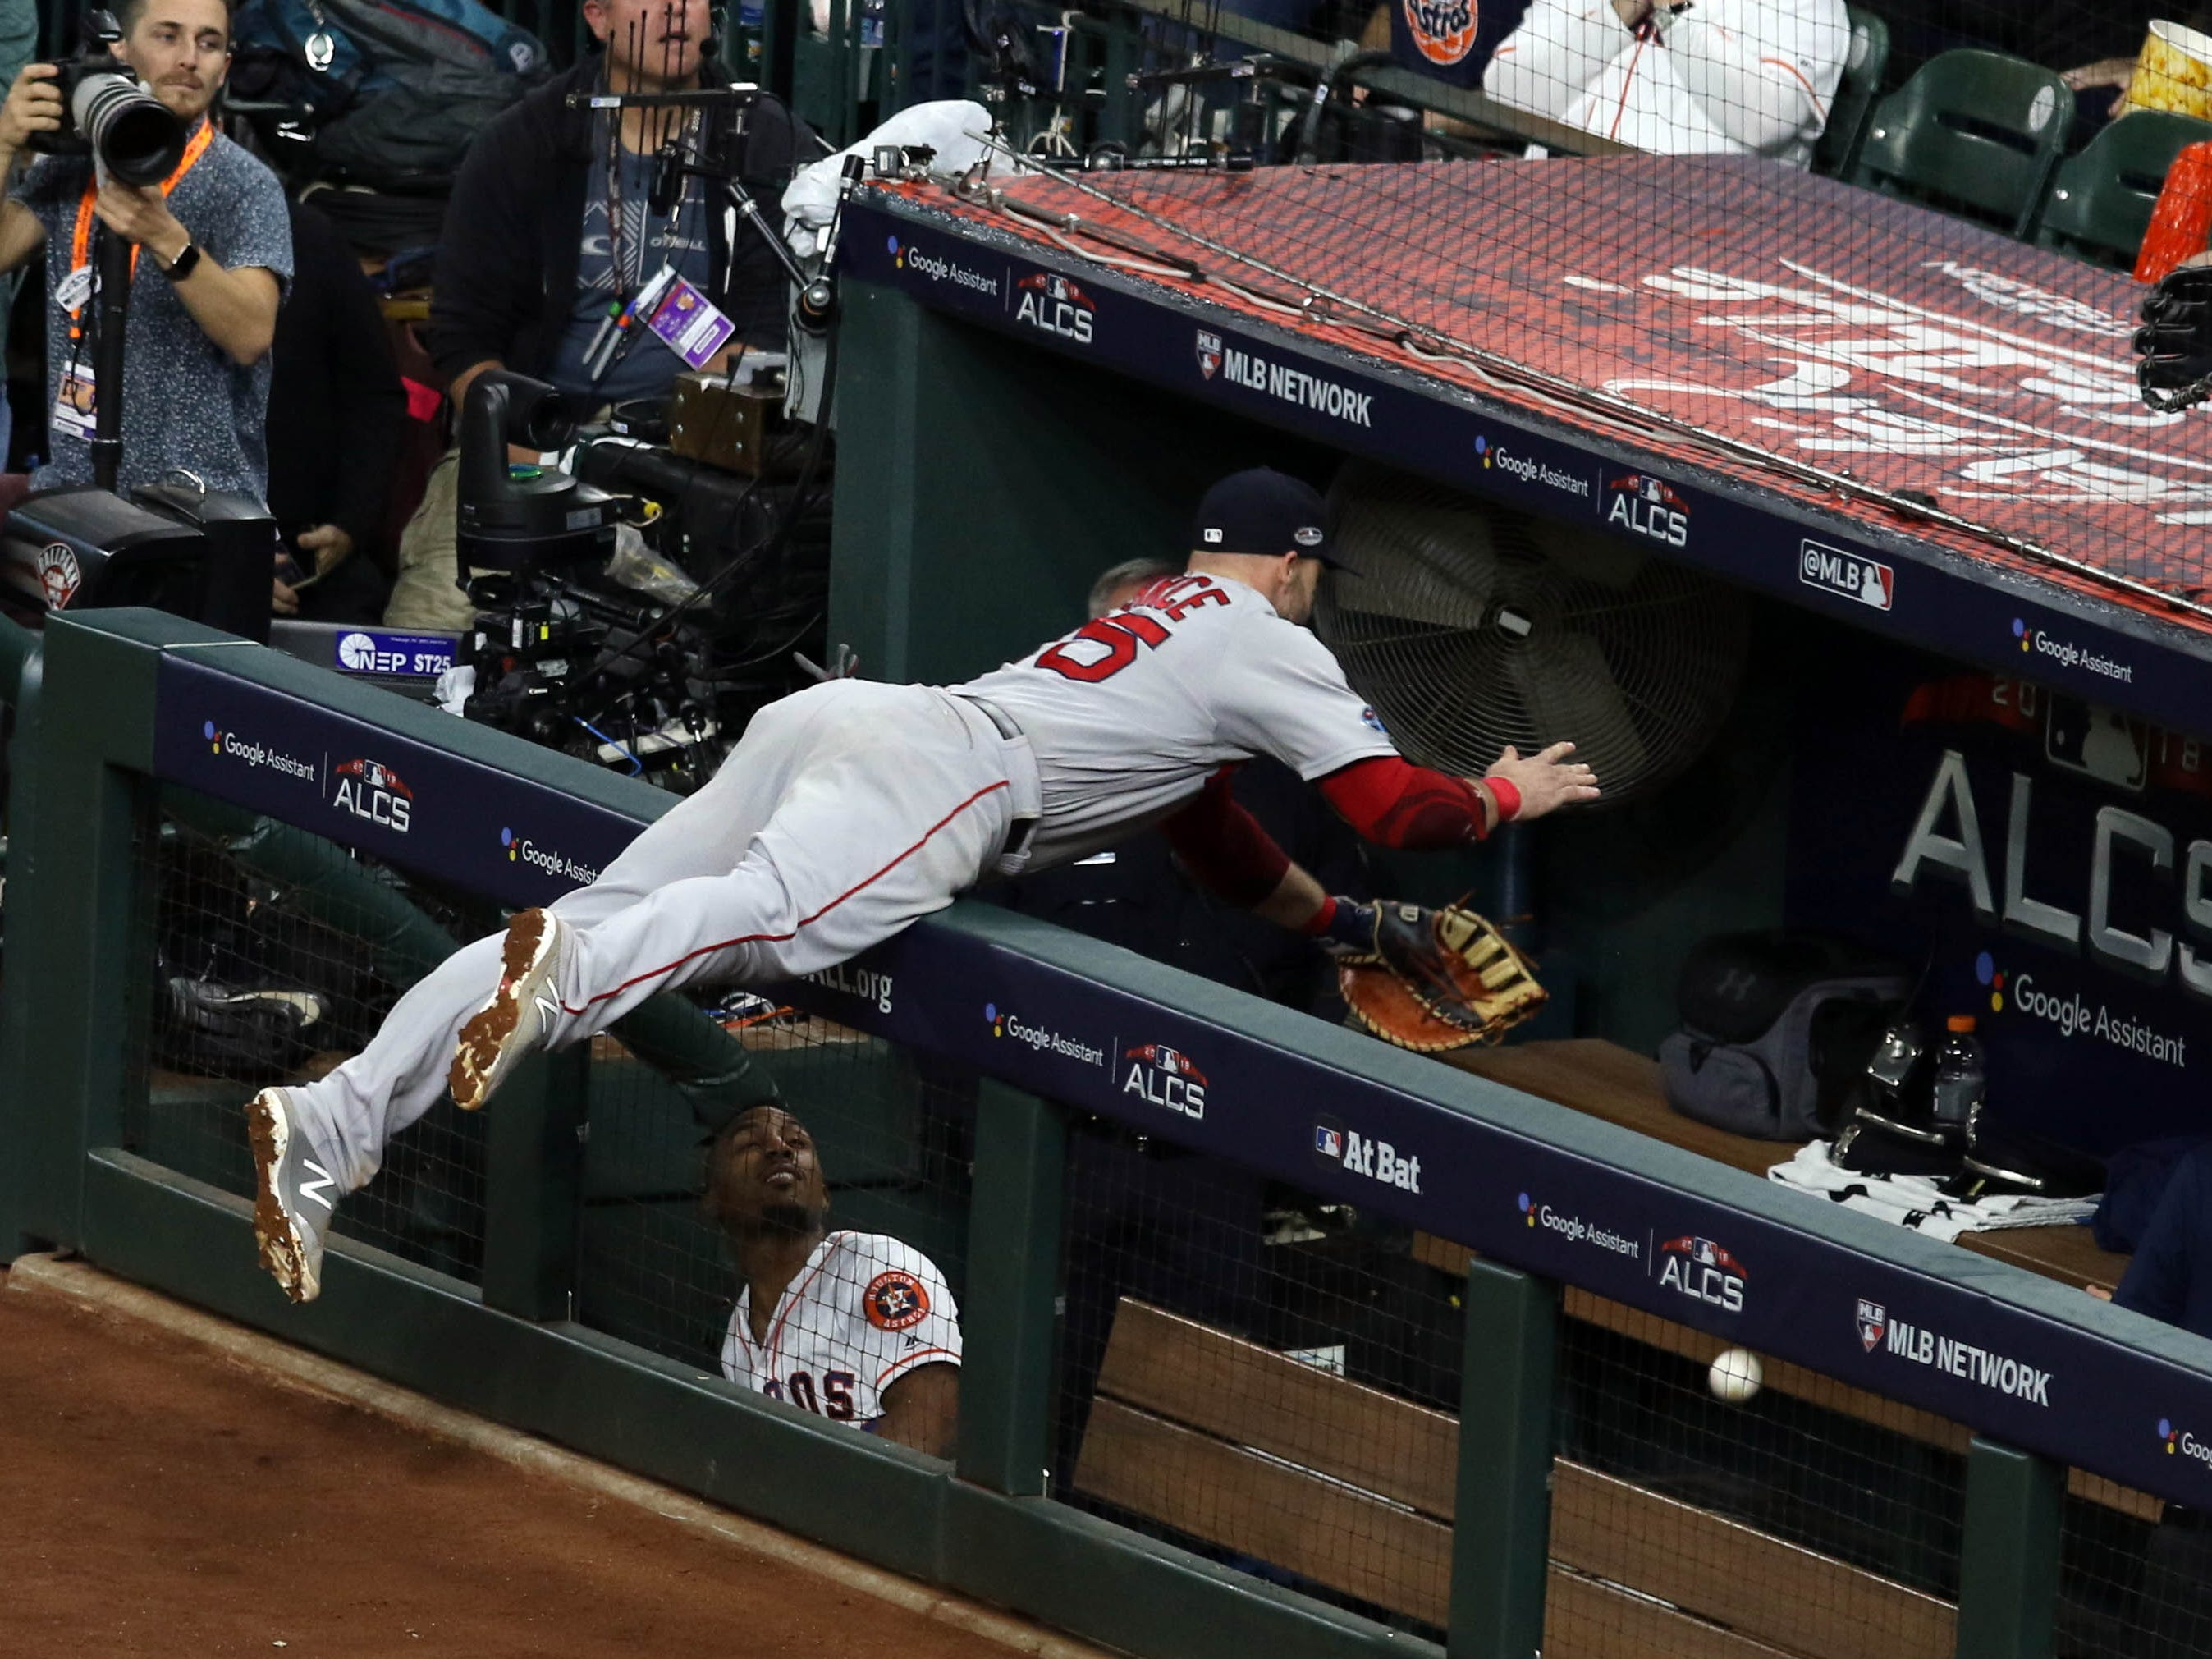 ALCS Game 4: Red Sox first baseman Steve Pearce attempts to make a catch and flips into the Astros dugout in the seventh inning.